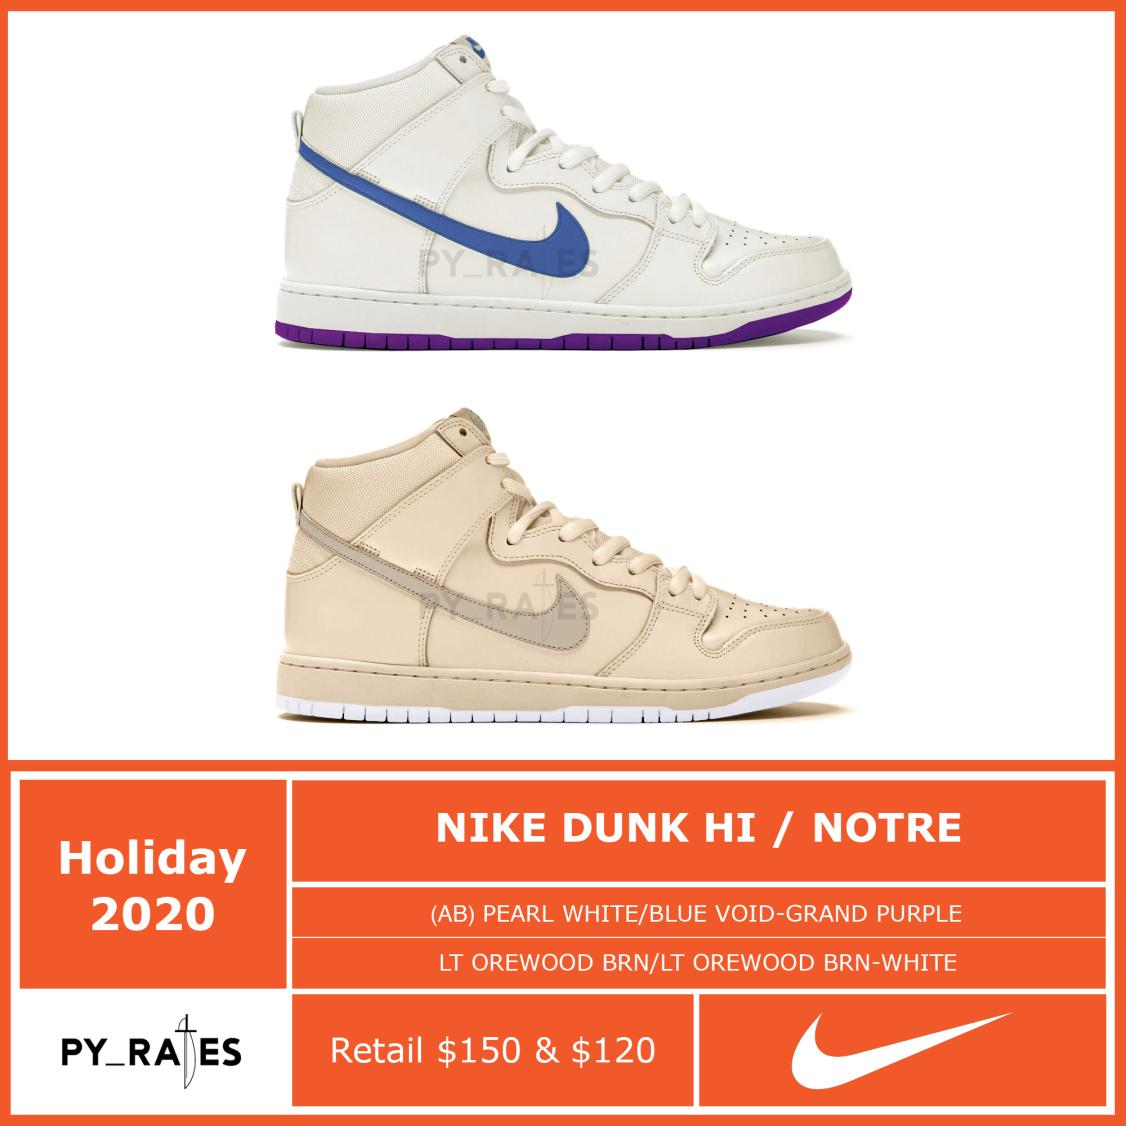 notre-nike-dunk-high-release-2020-winter